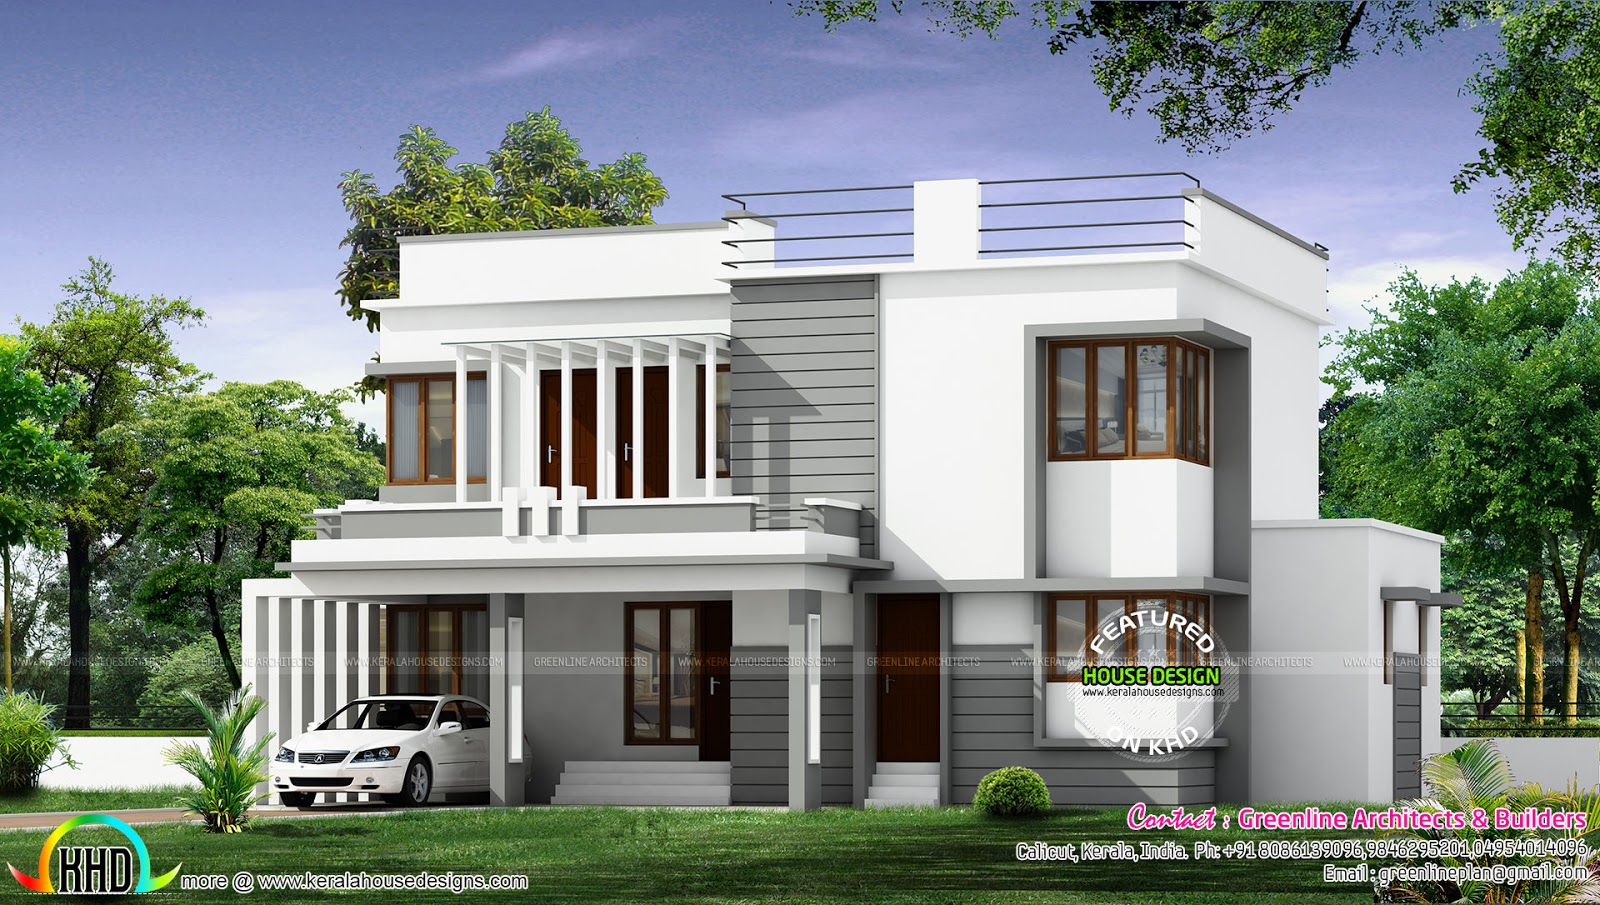 New modern house architecture kerala home design and for Modern floor plans for new homes